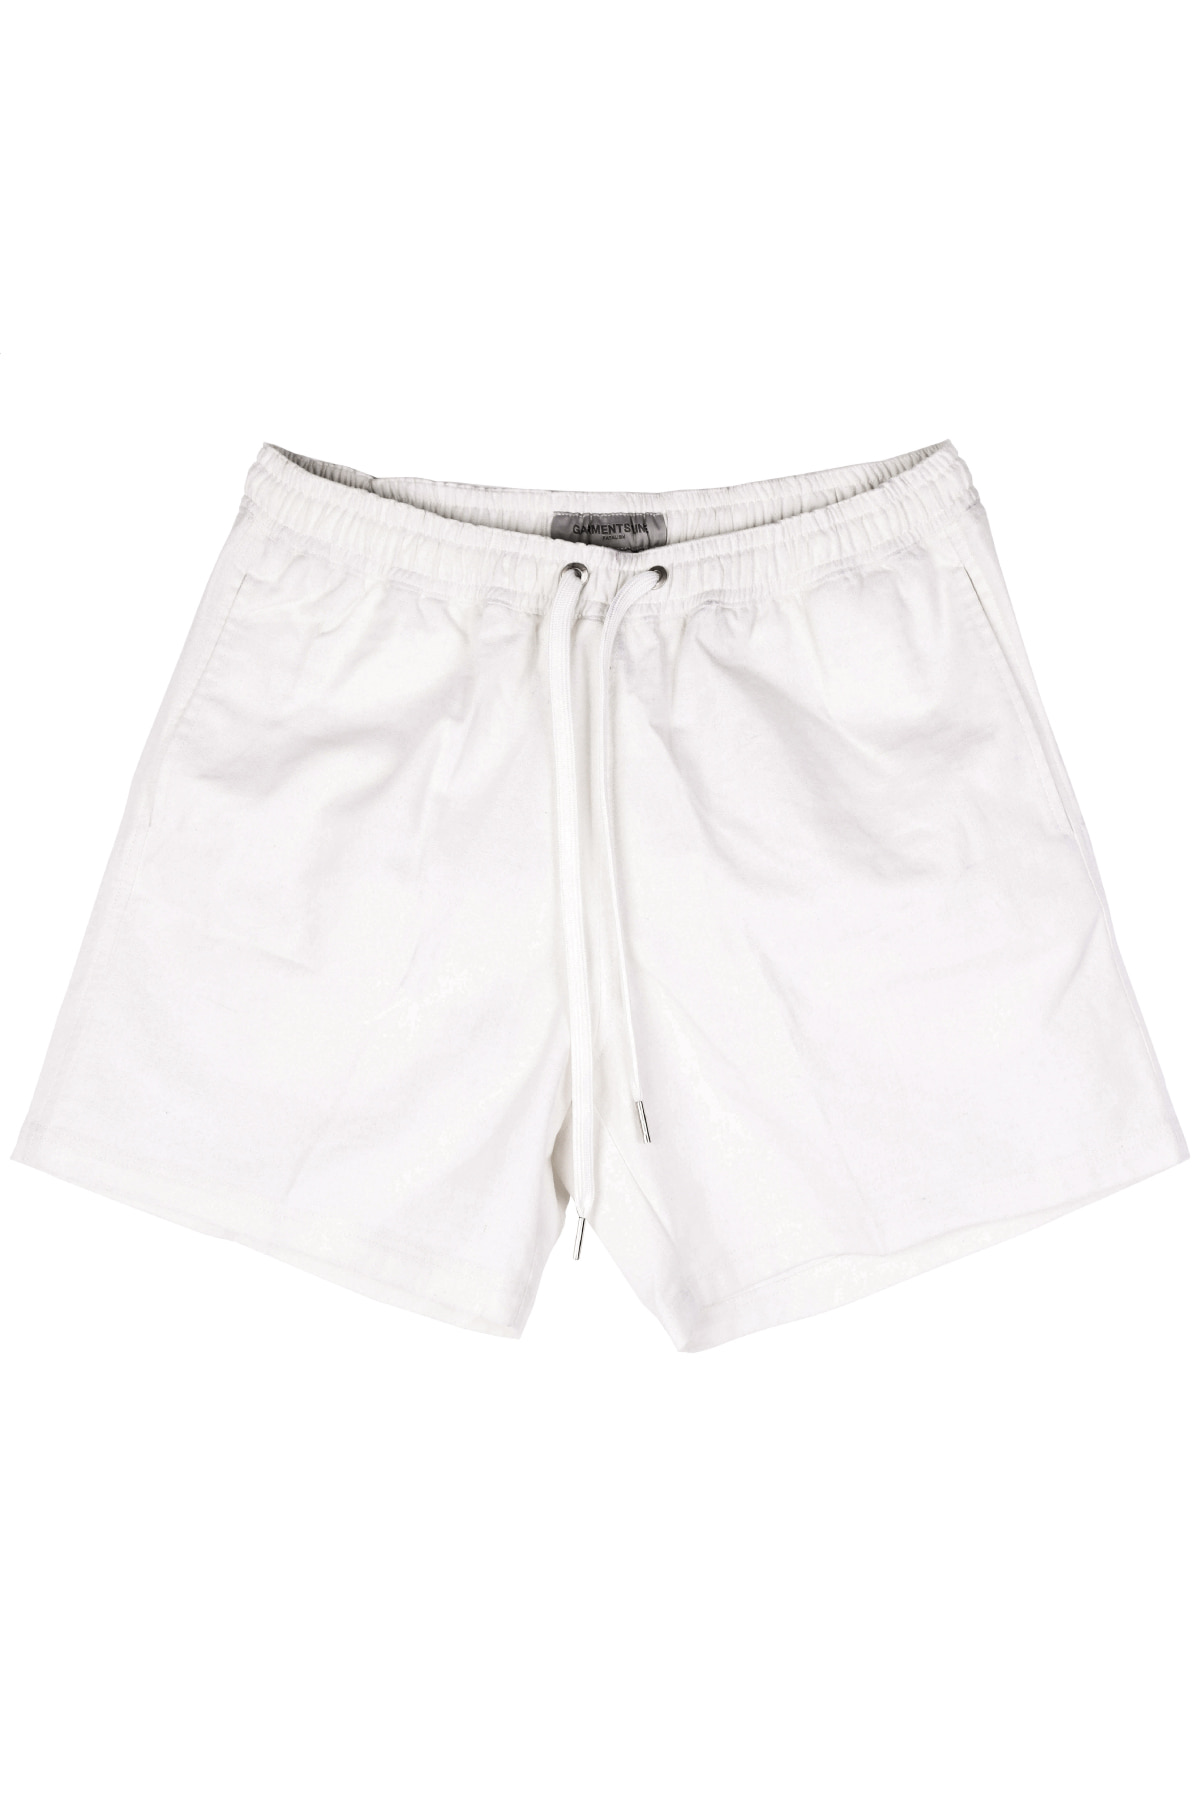 #G006 Linen short pants  (white)